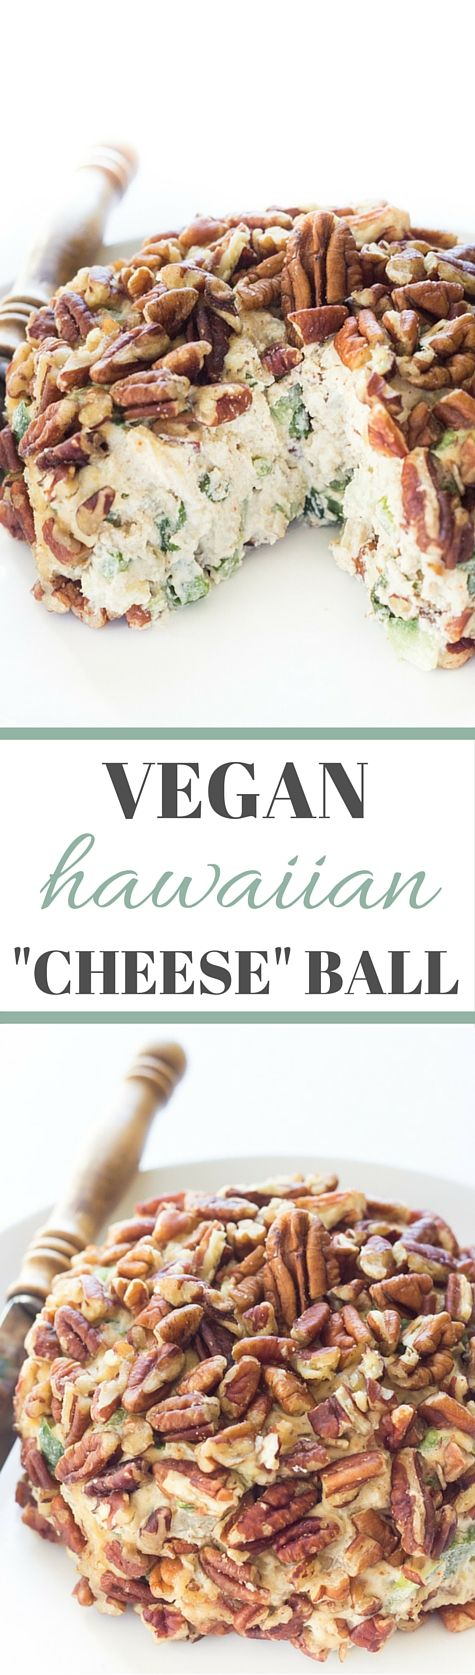 "Vegan Hawaiian ""Cheese"" Ball - Filled with pineapple, green peppers and onions, and pecans you'll never miss the cheese! Tastes just like a classic cheese ball! Paleo too!"